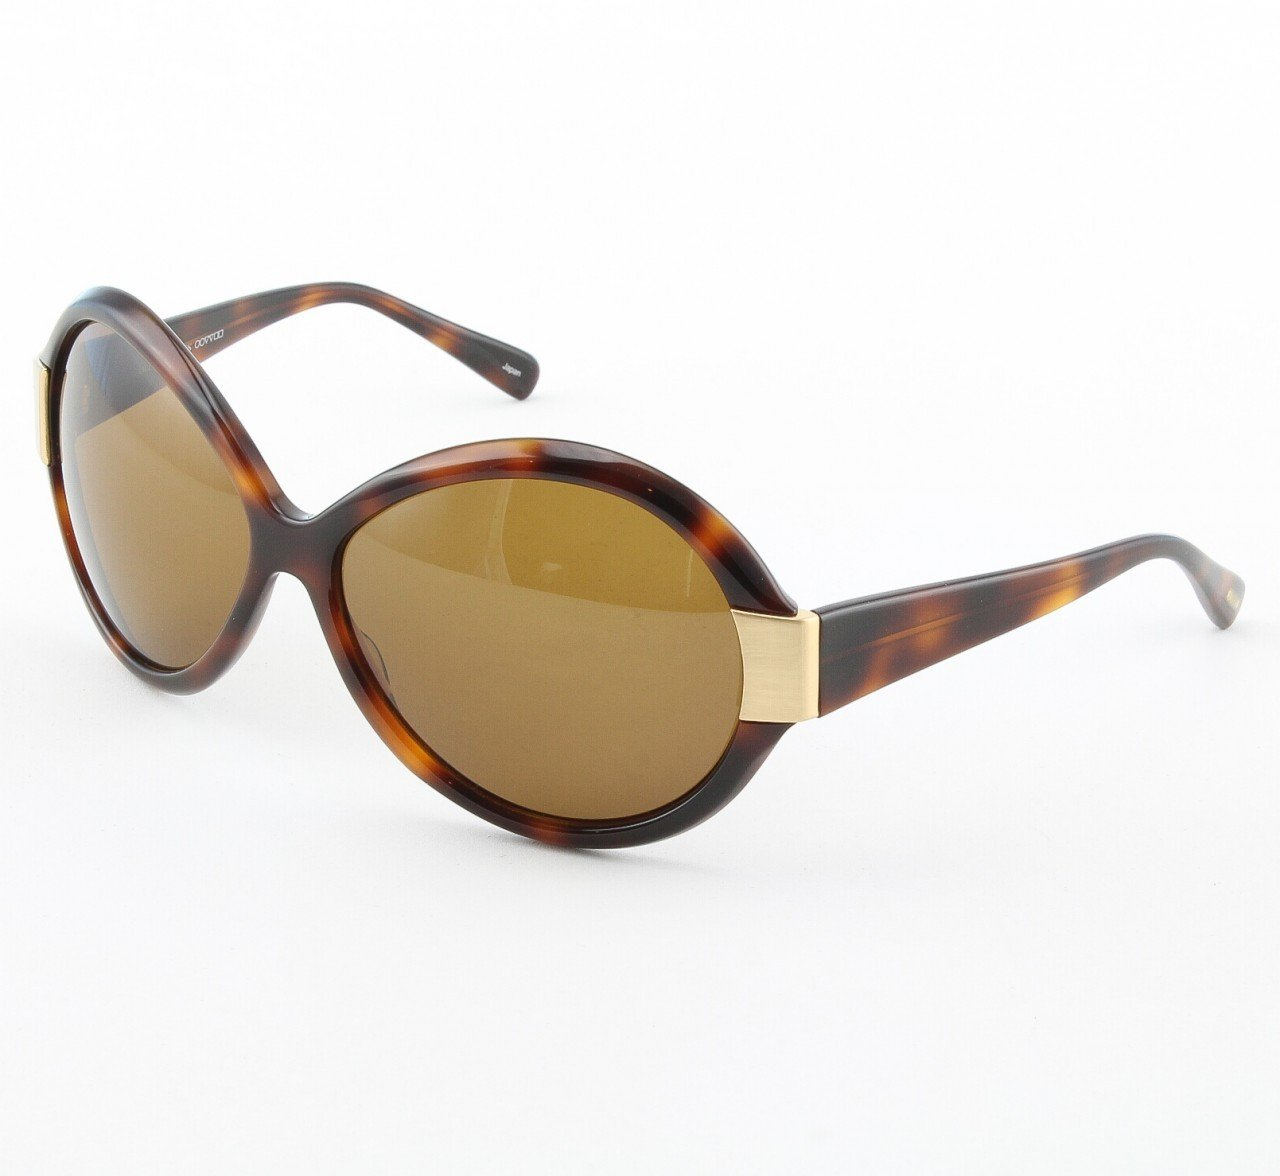 Oliver Peoples Zip Harlot Sunglasses Col. DM-PBR Tortoise Brown with Brown Gradient Lenses